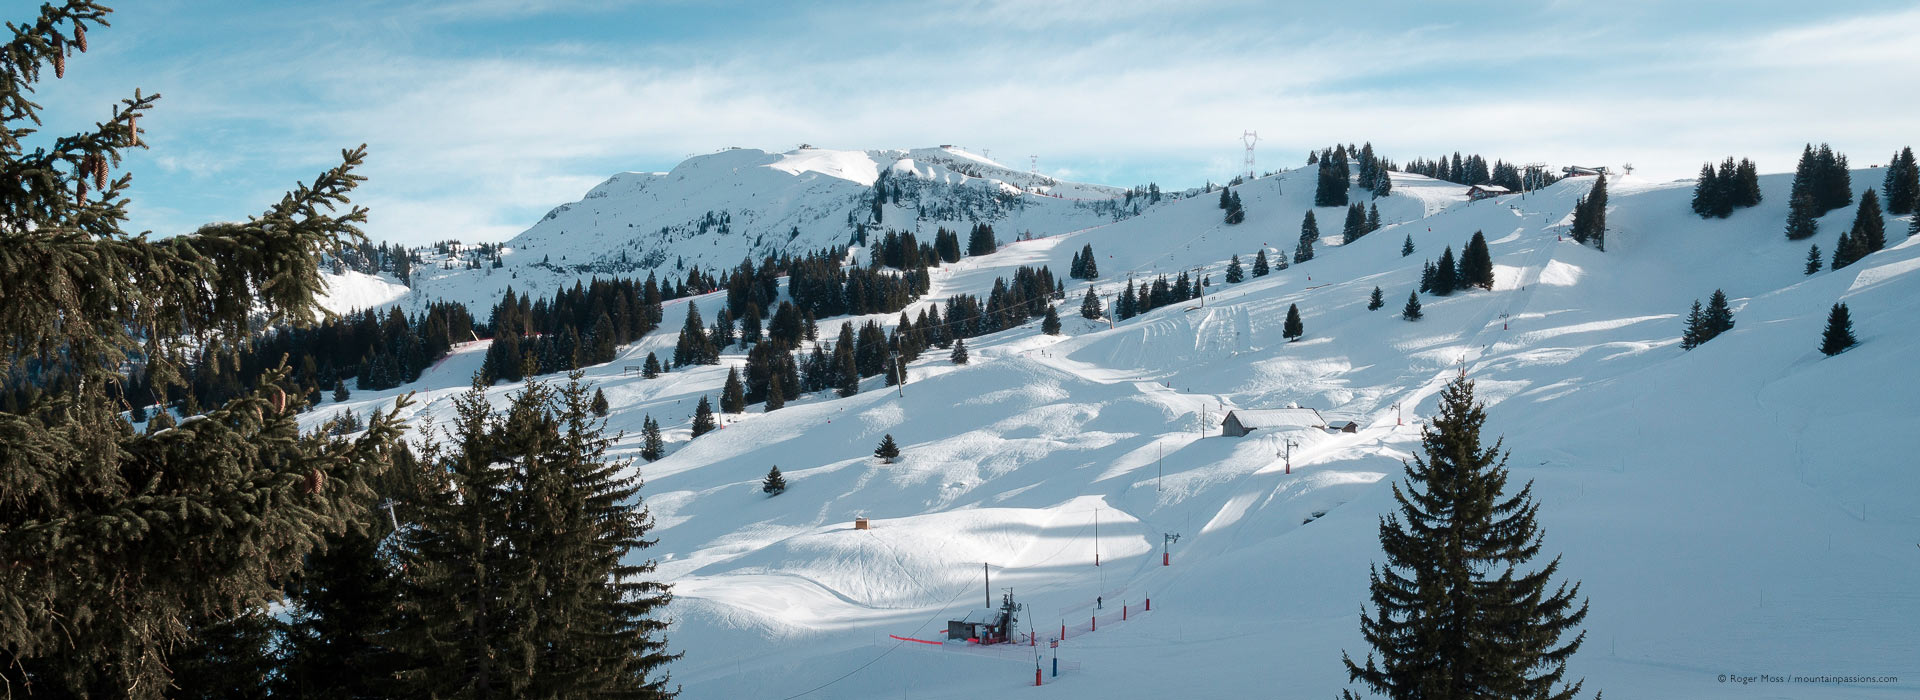 Wide view of Samoens ski area, Grand Massif, French Alps